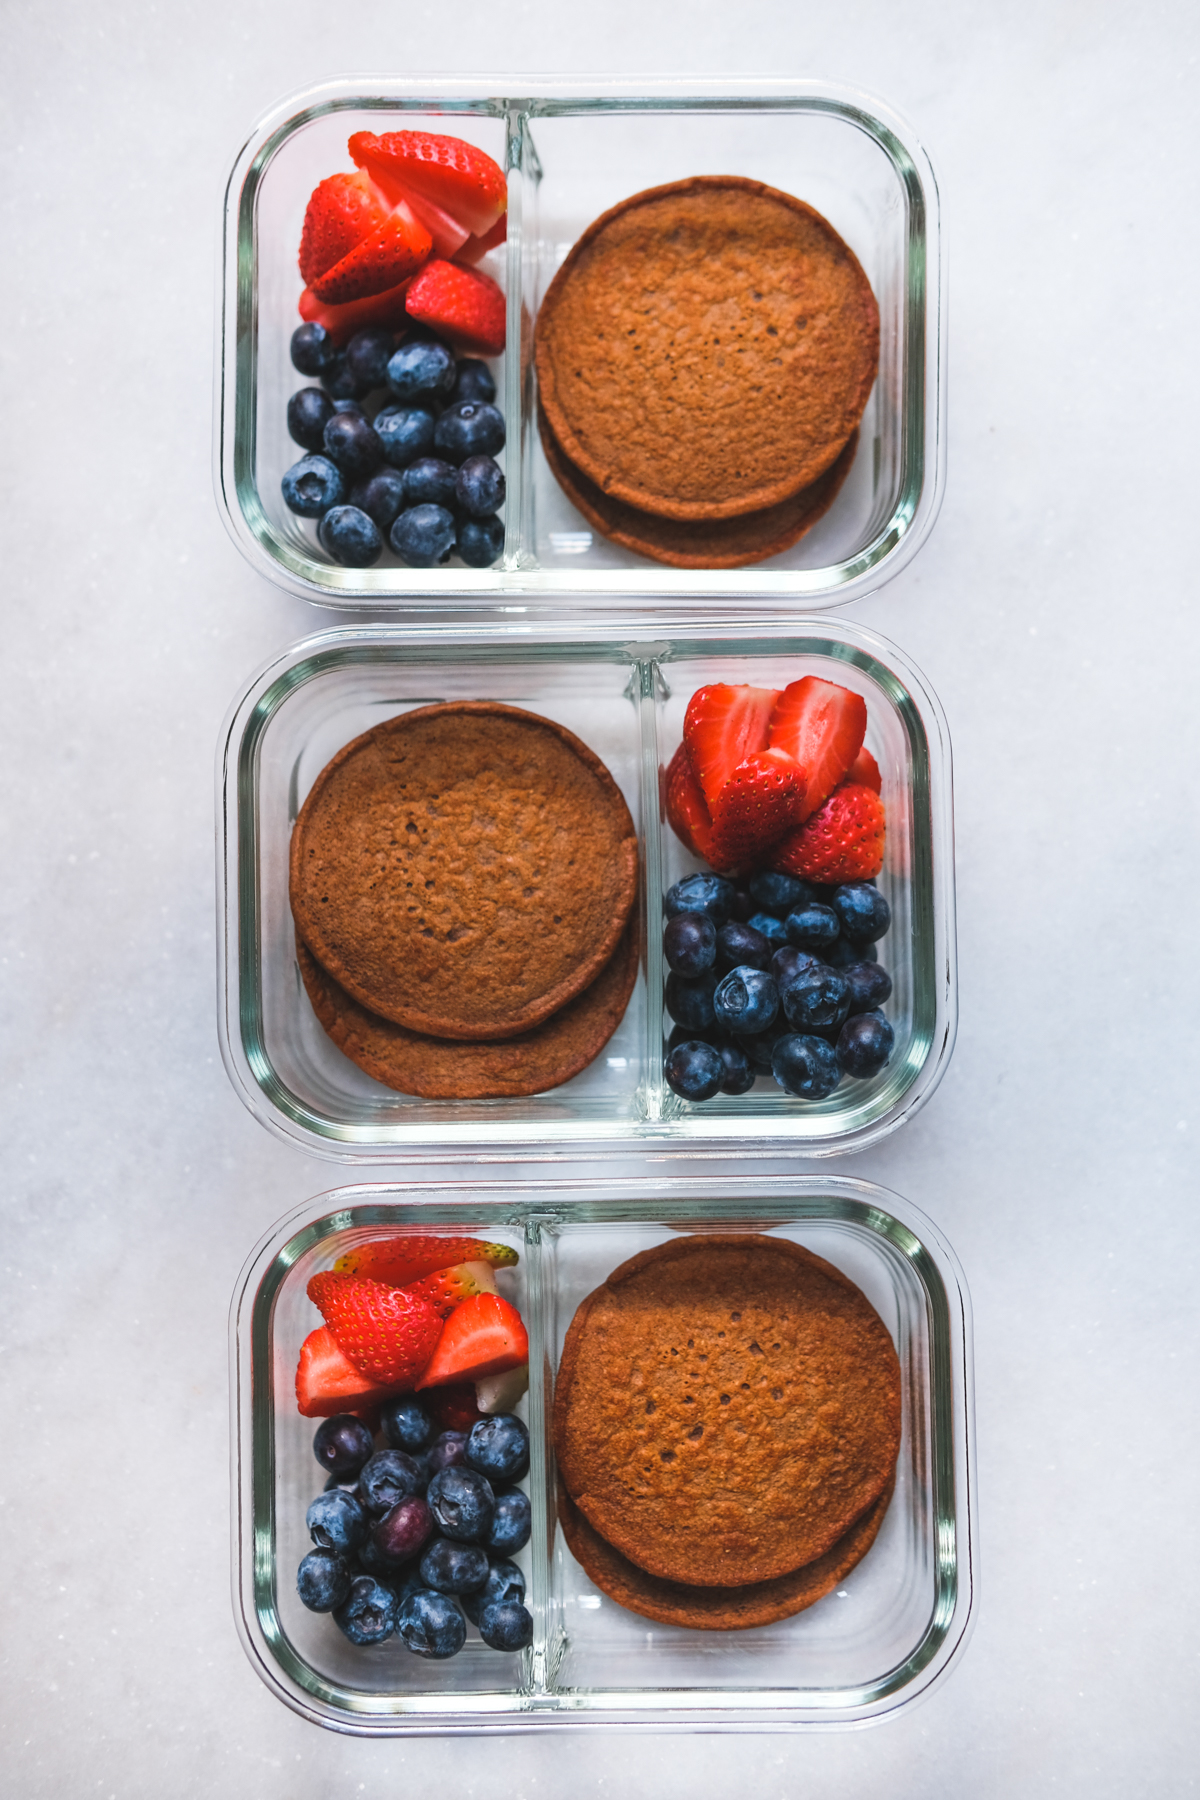 chocolate protein pancakes in meal prep containers with berries